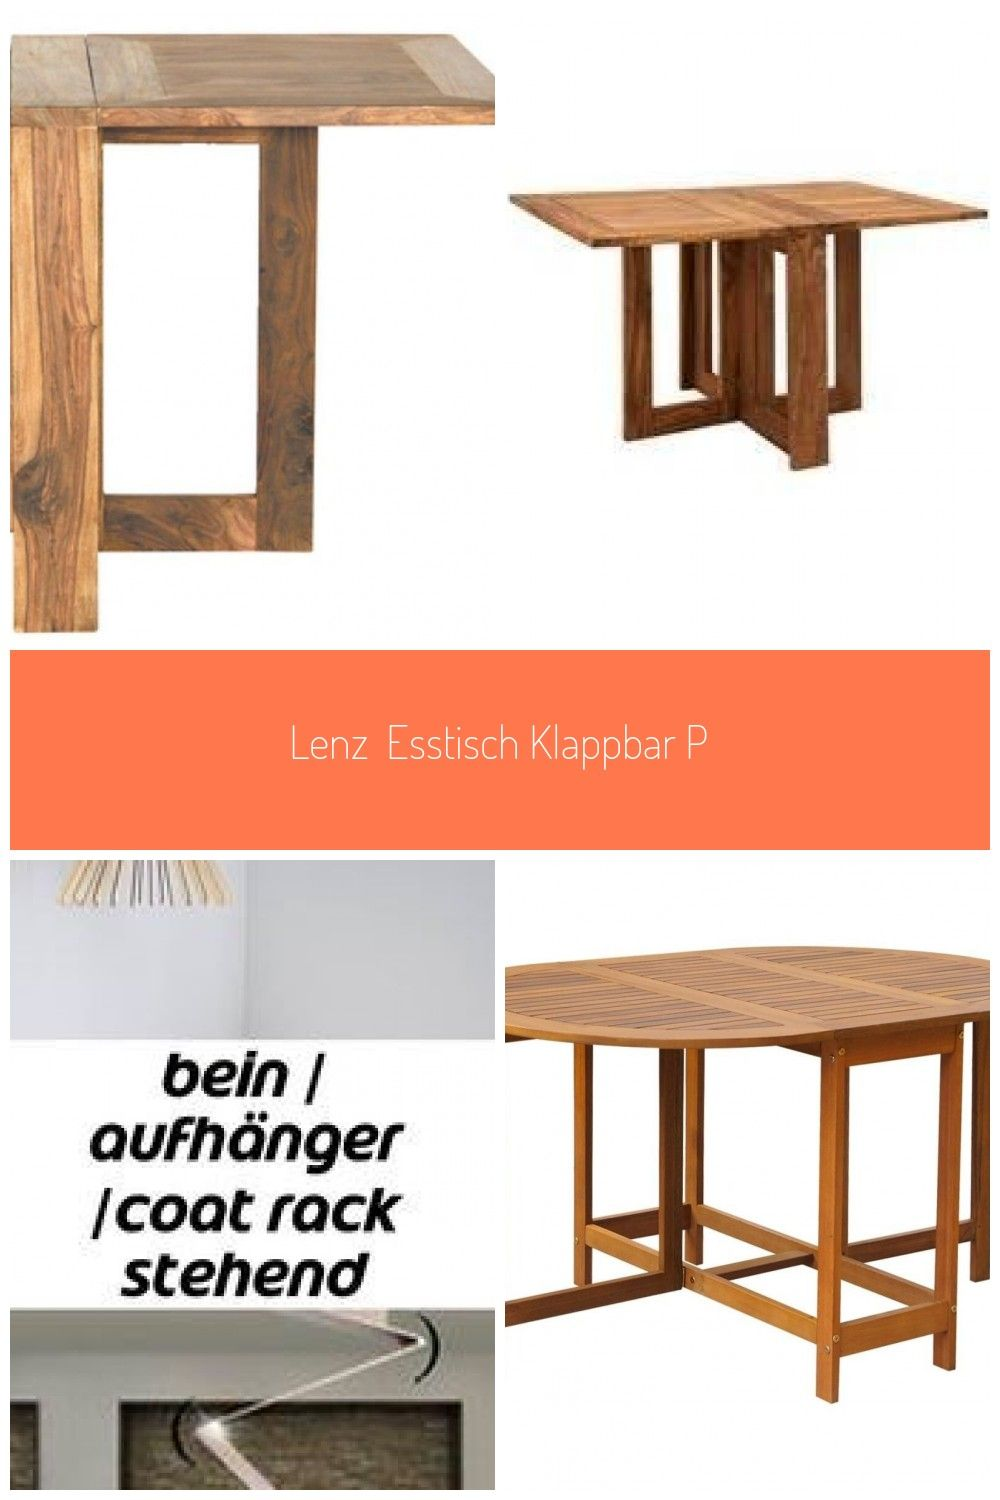 Lenz Esstisch Klappbar Palisanderholz Massiv Esstisch Klappbar Home Decor Coffee Table Decor